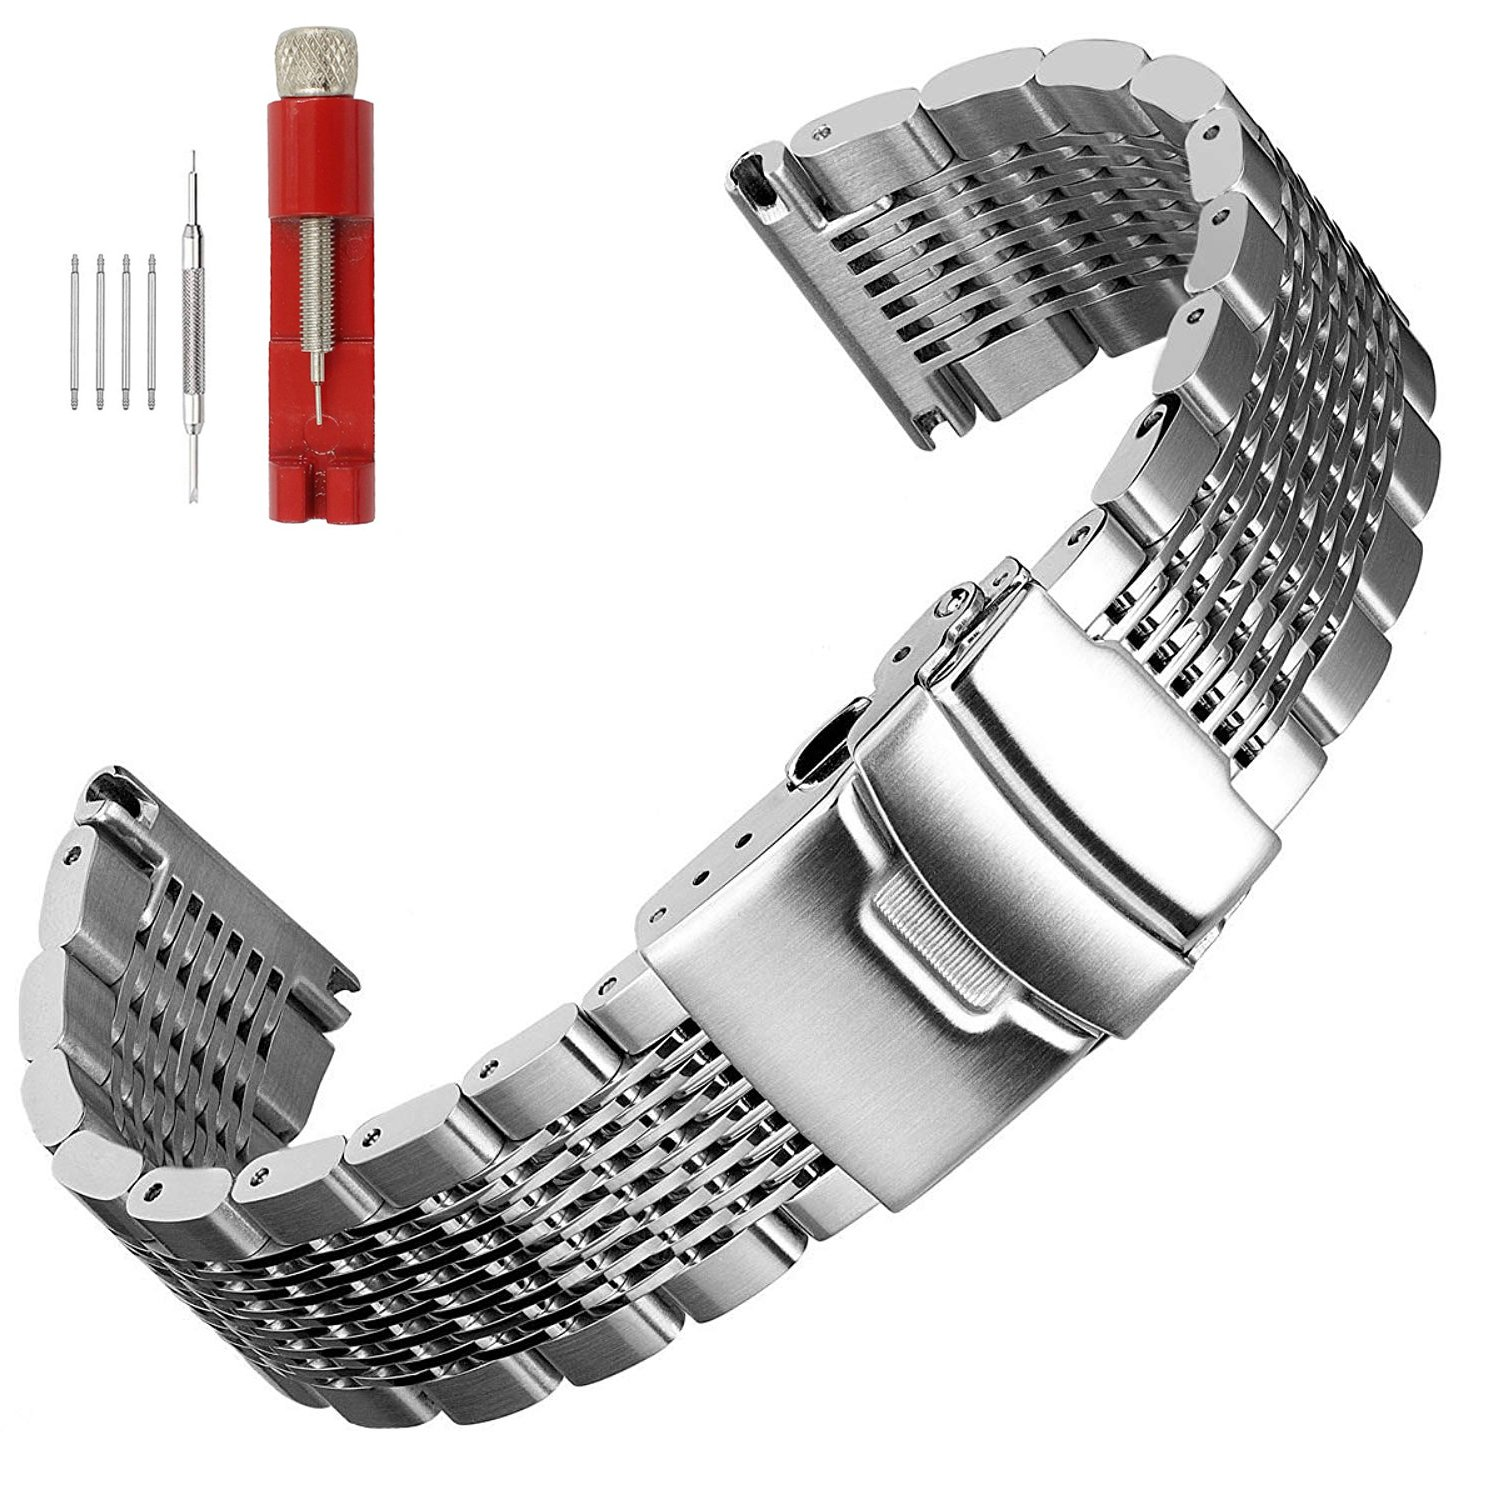 Solid Mesh Stainless Steel Bracelets 20mm/22mm/24mm Watch Bands Deployment Buckle Brushed/Polished Strap for Men Women by Hstrap (Image #1)